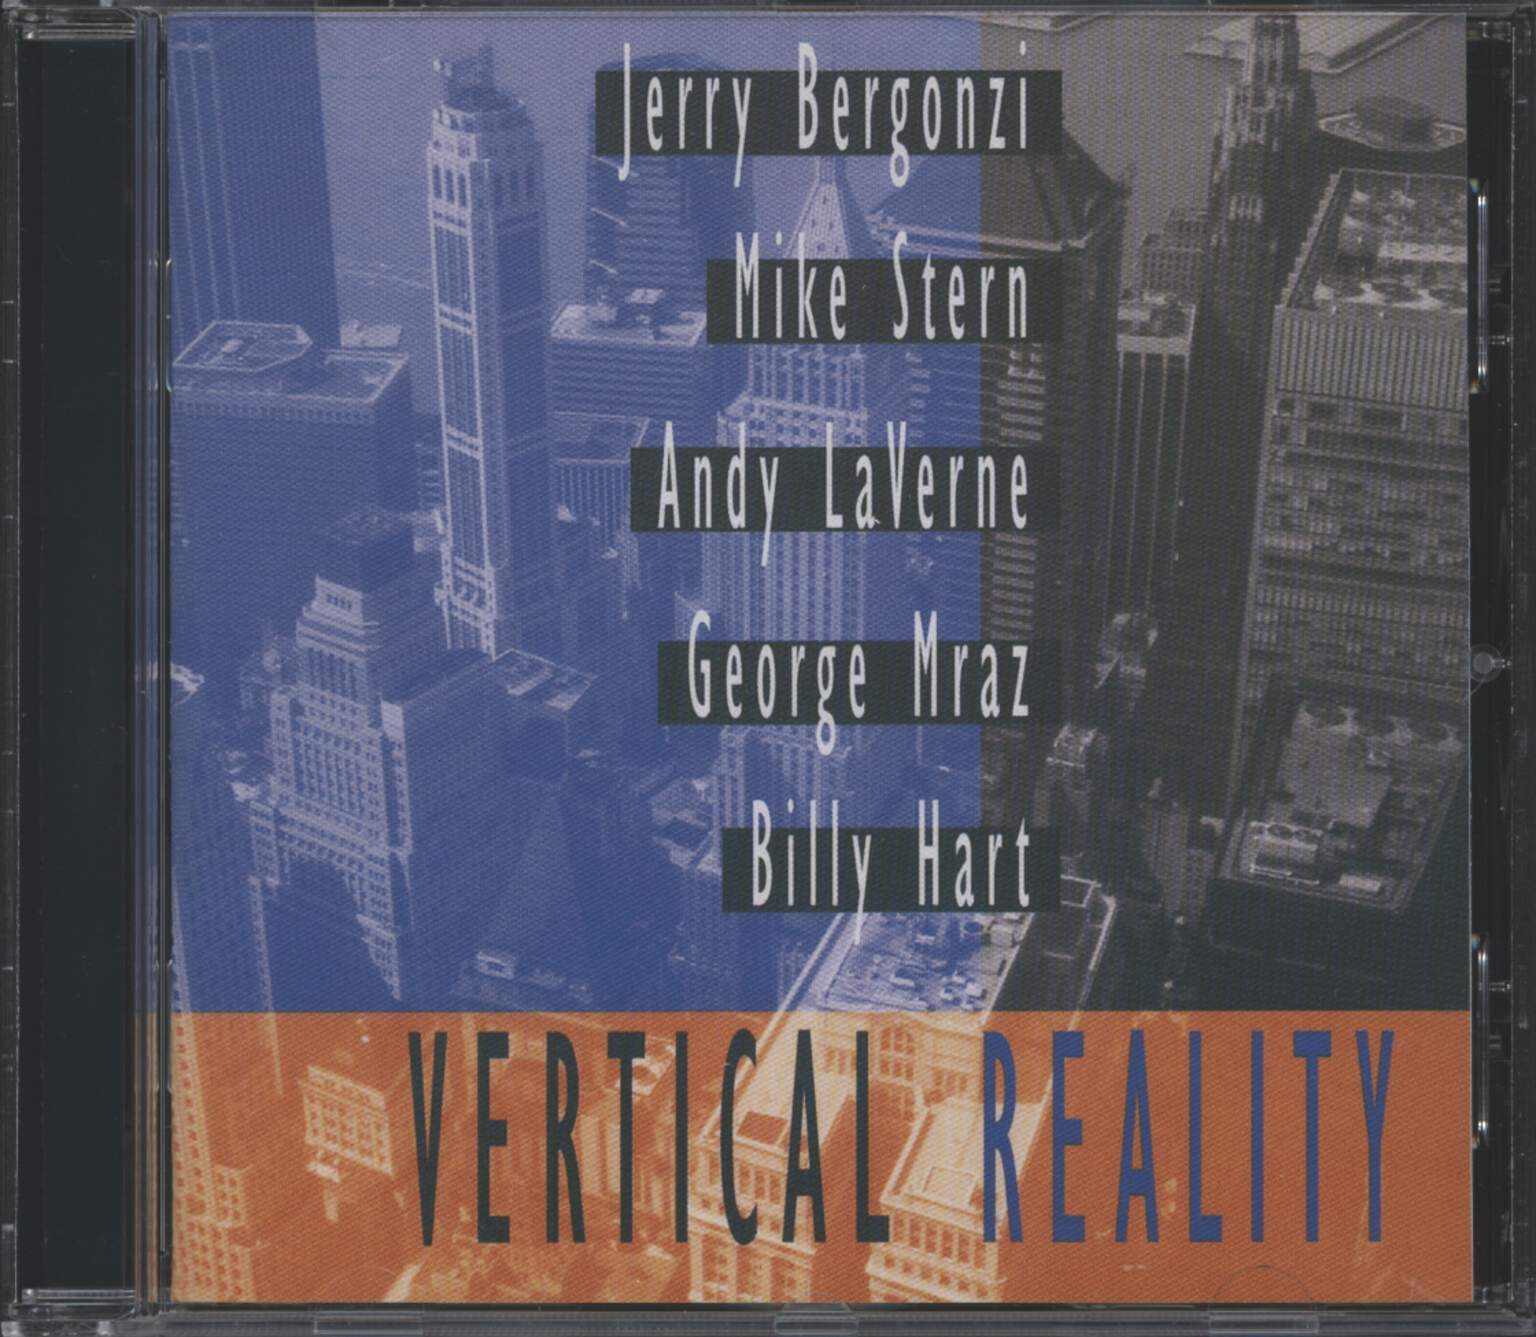 Jerry Bergonzi: Vertical Reality, CD